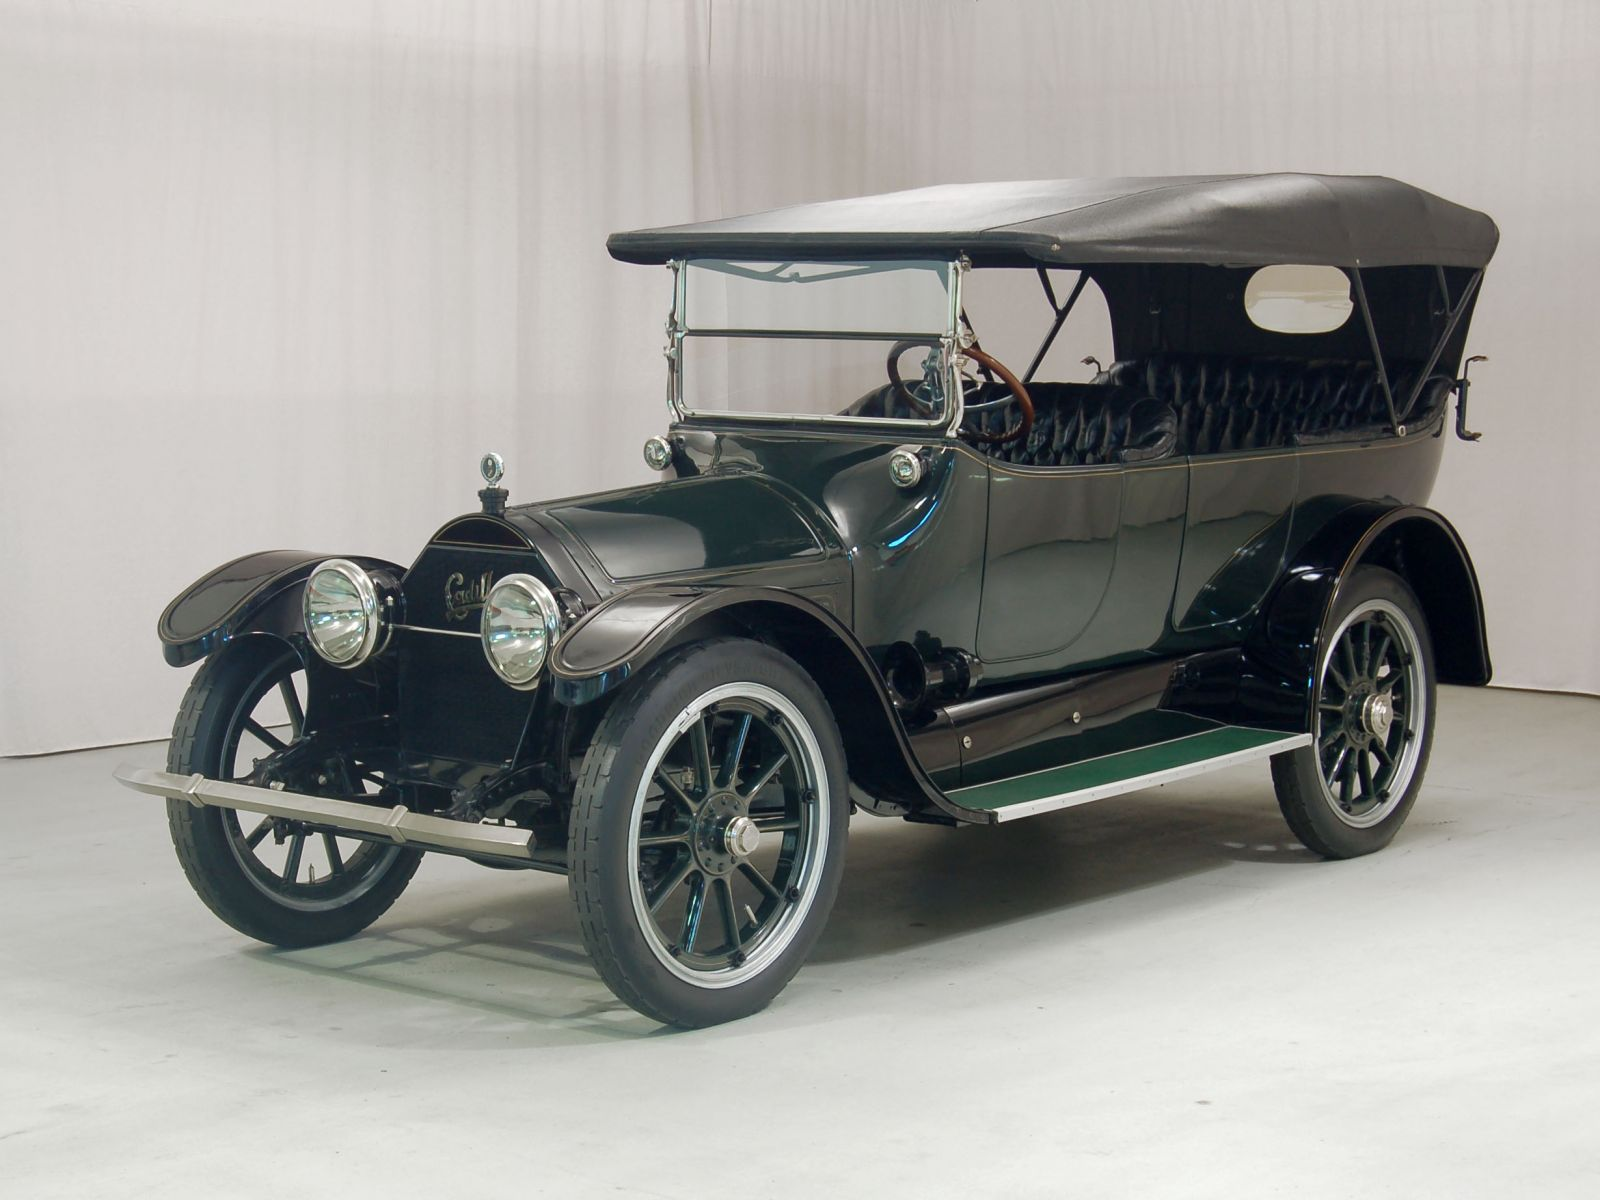 Buying And Selling Cars >> 1915 Cadillac Touring